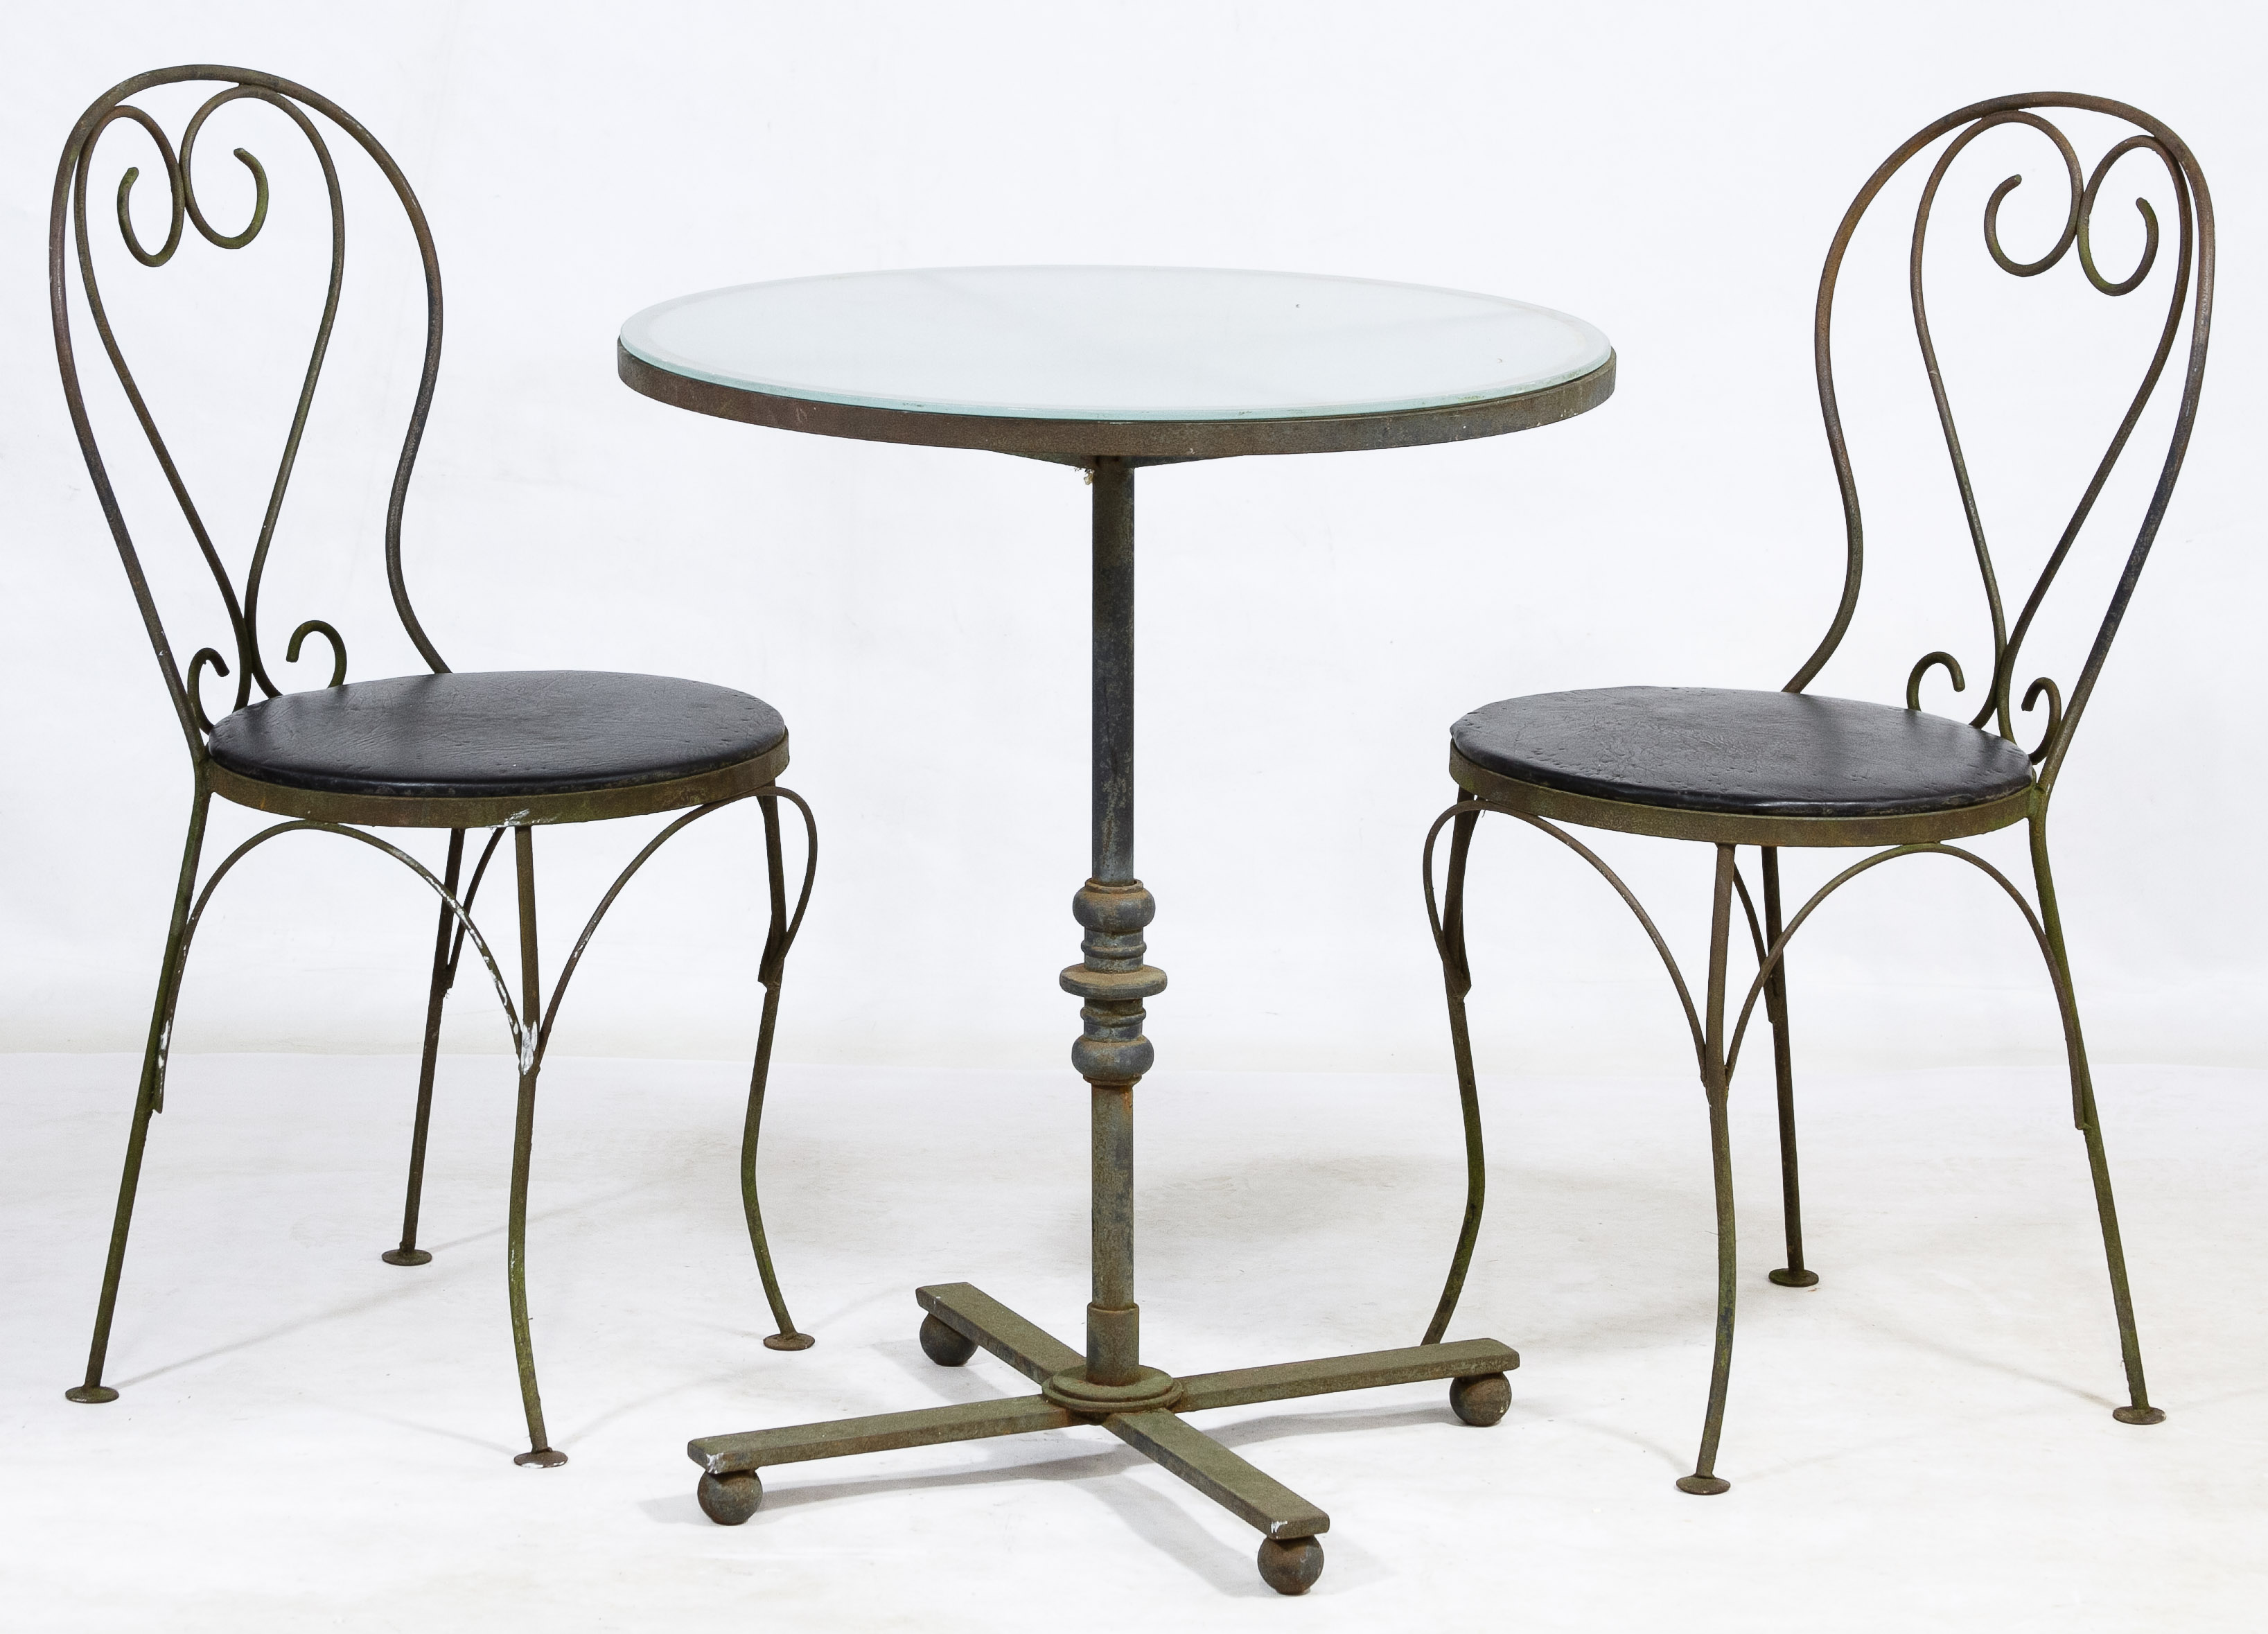 Wrought iron bistro table and chairs 1920s wrought iron for Wrought iron cafe chairs